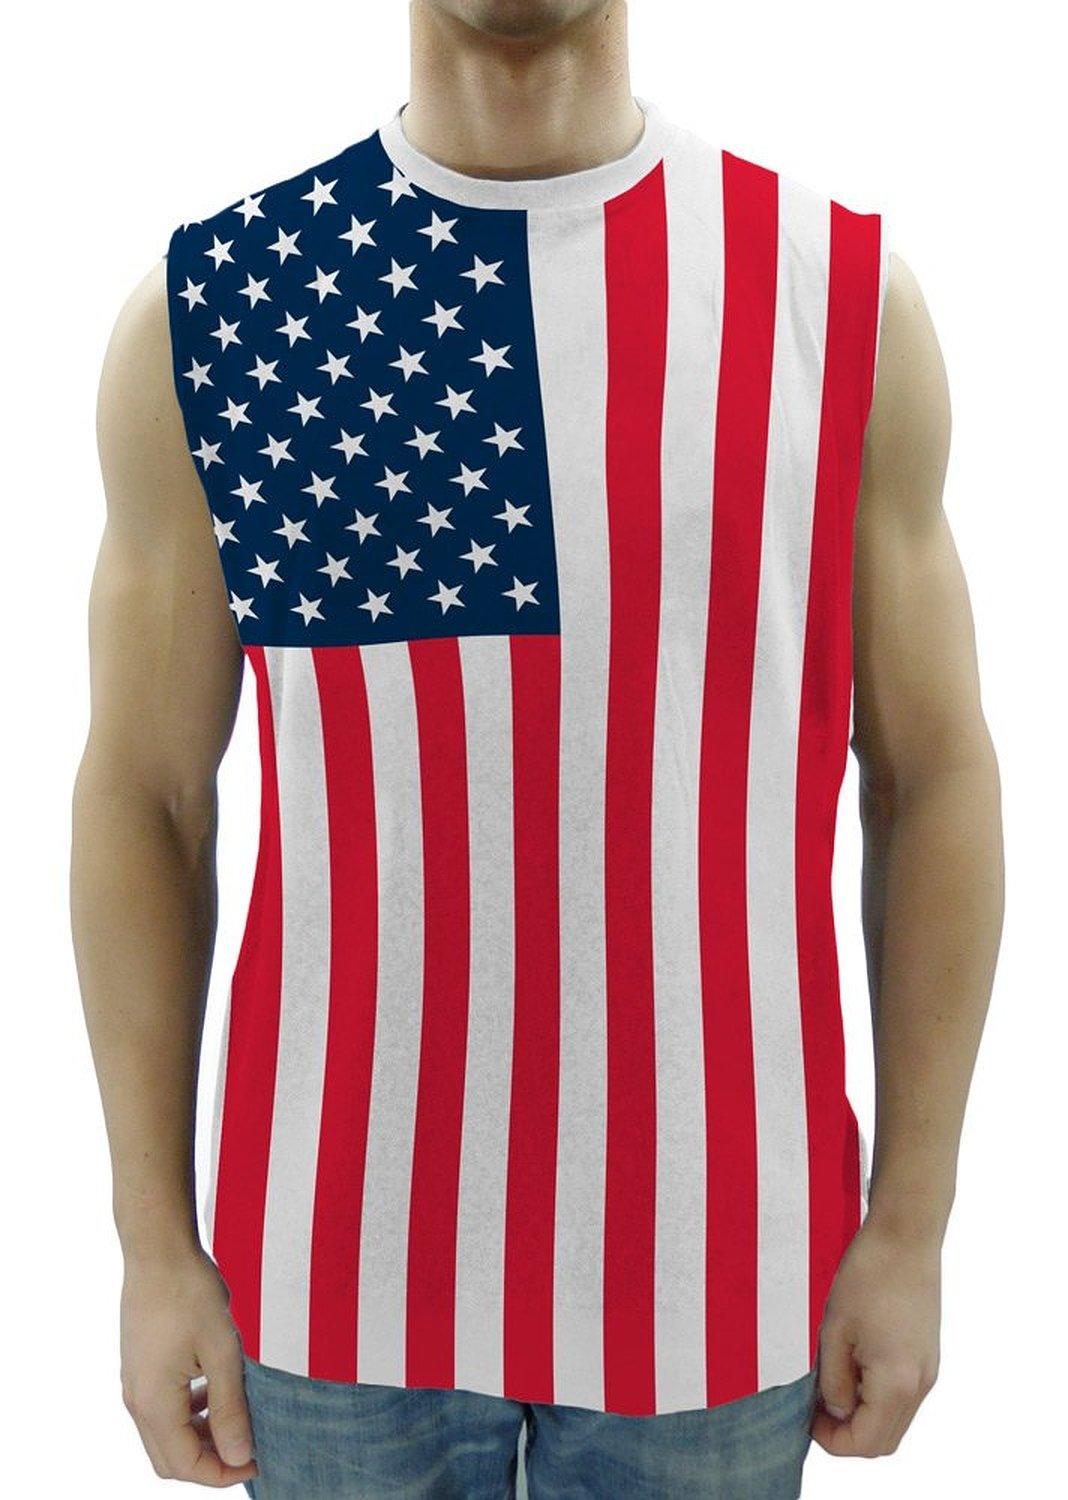 0822904877ef80 Amazon.com  USA American Flag Sleeveless Adult T-Shirt Muscle Tank